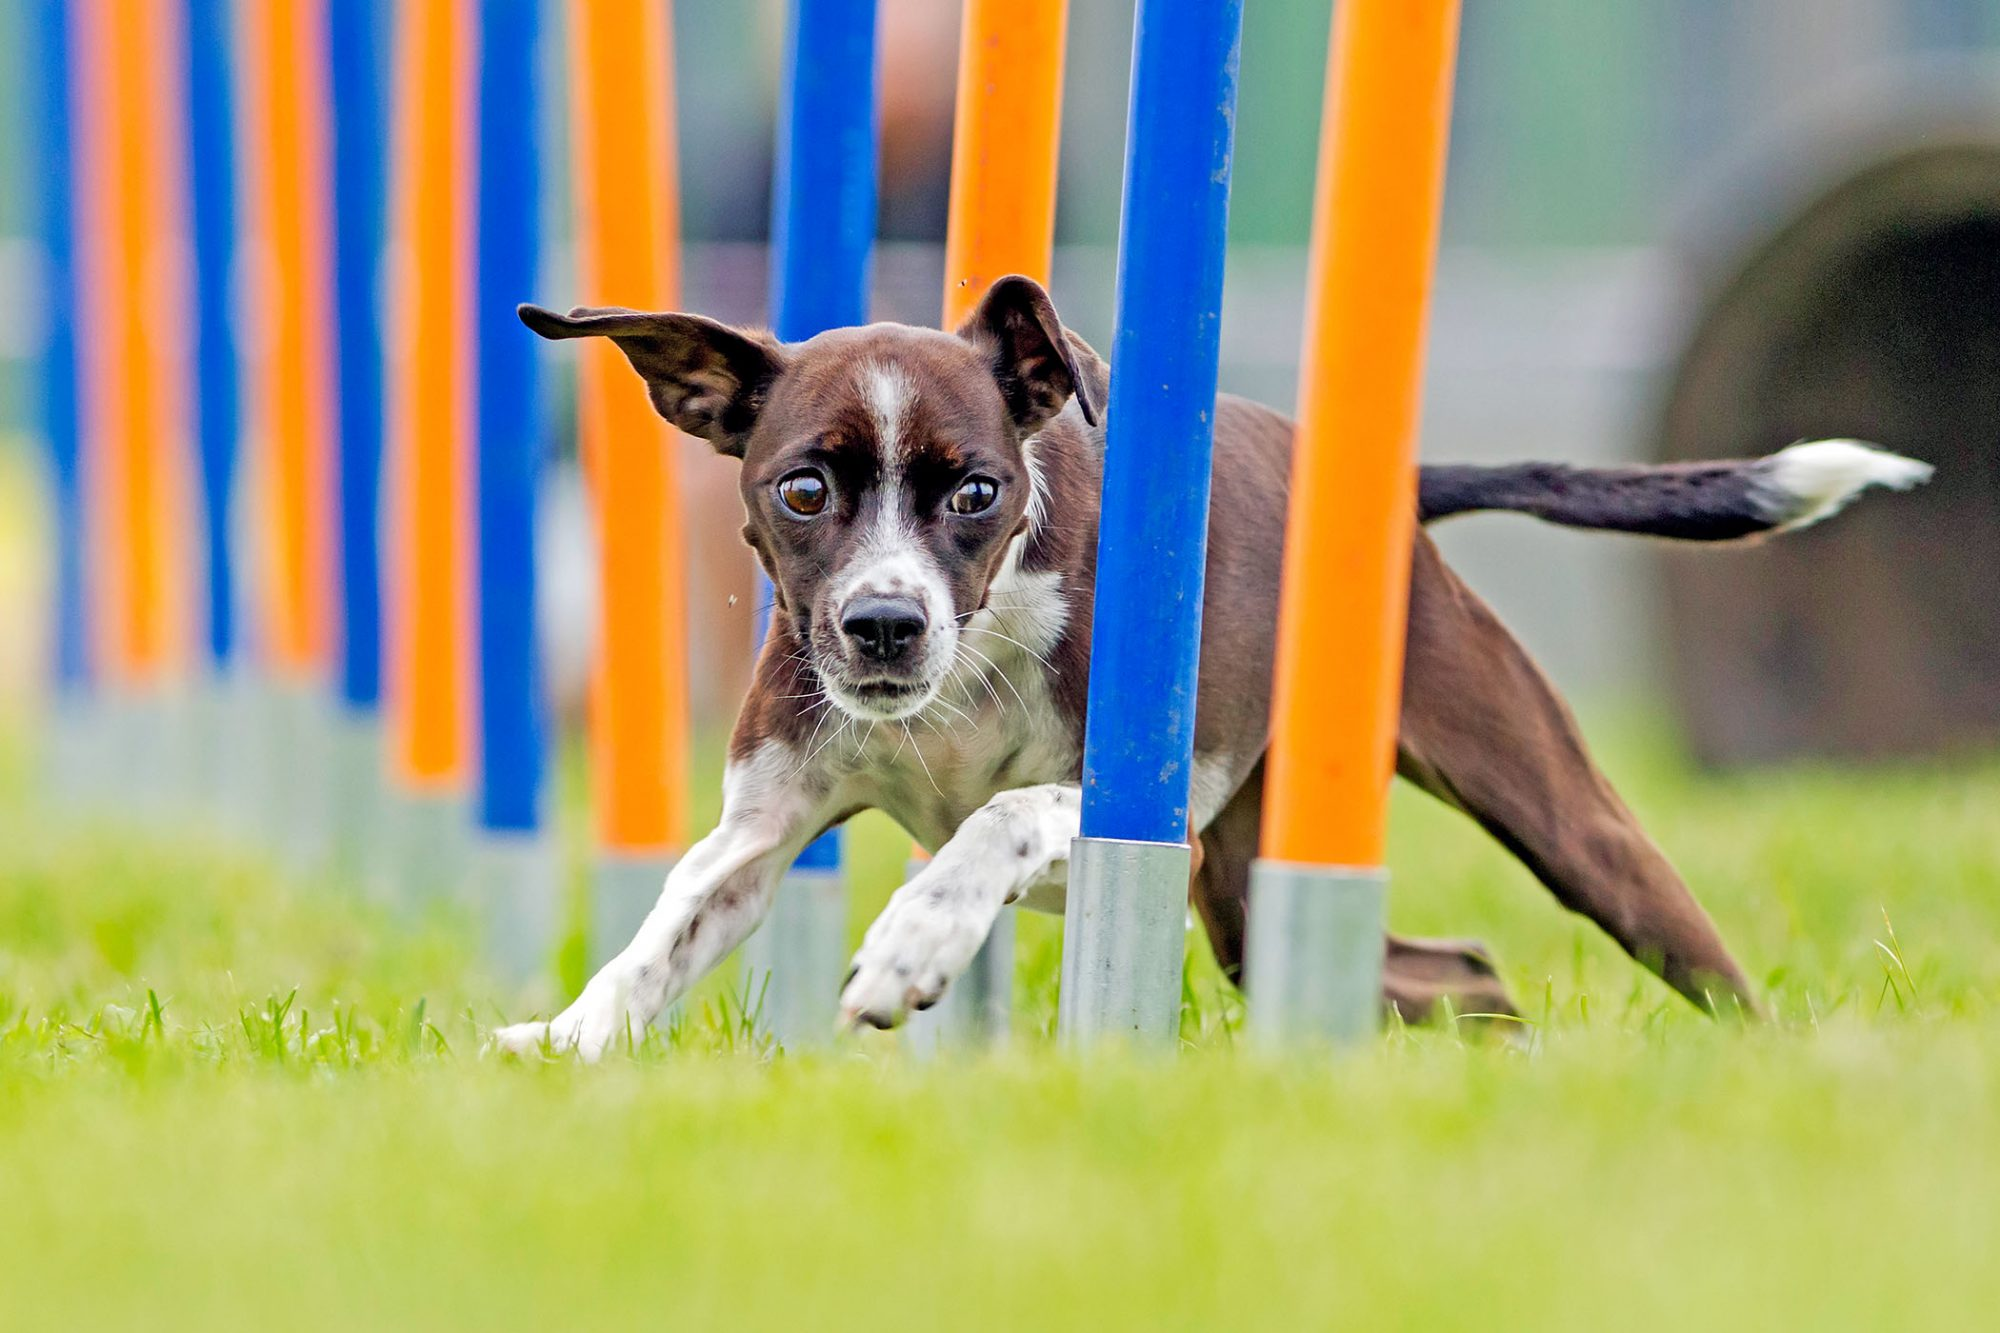 agility training dog running through blue and orange weave poles on an outdoor agility course